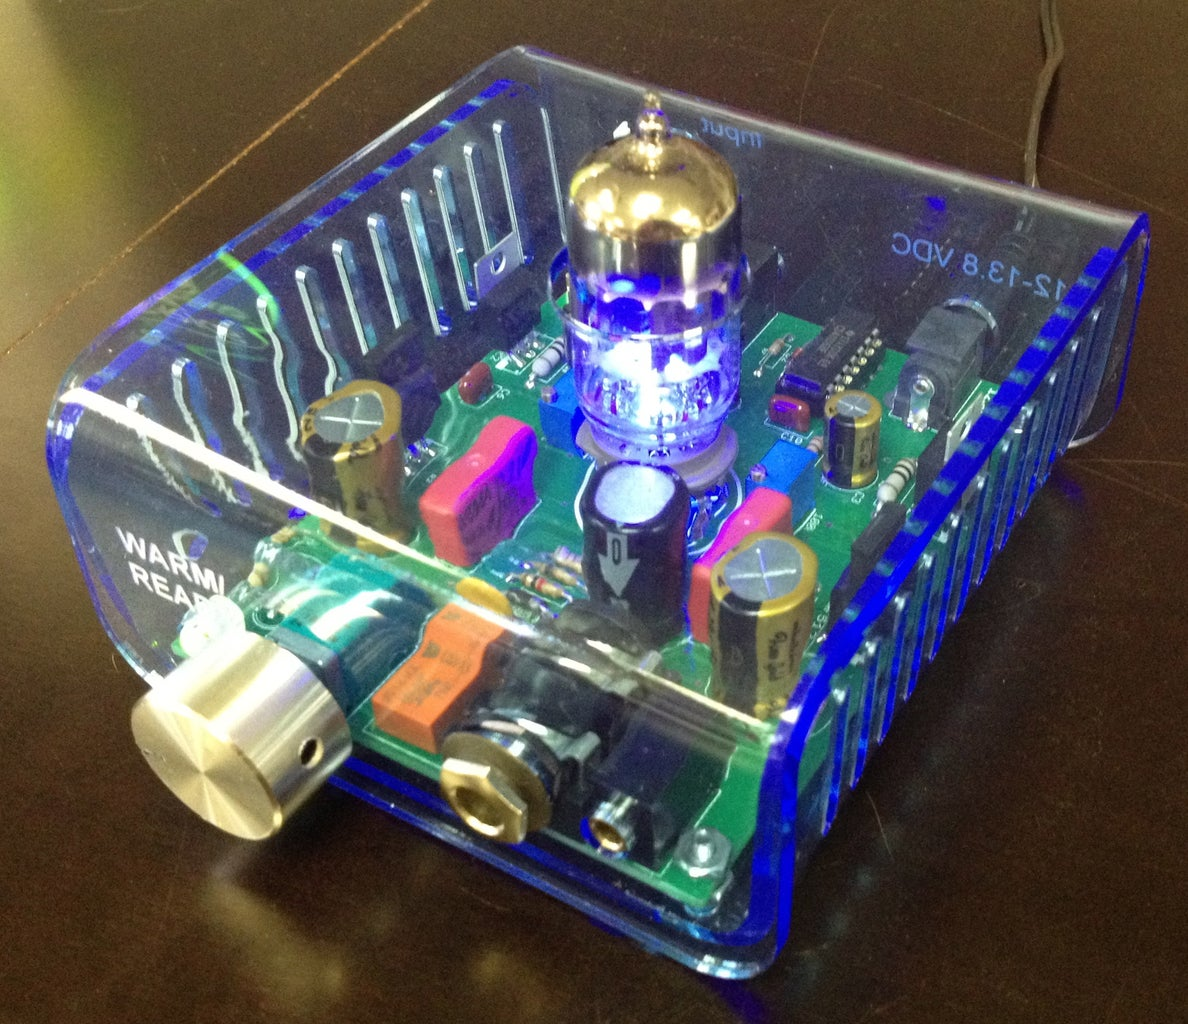 Acrylic Enclosure Using Laser Cutter and Strip Heater